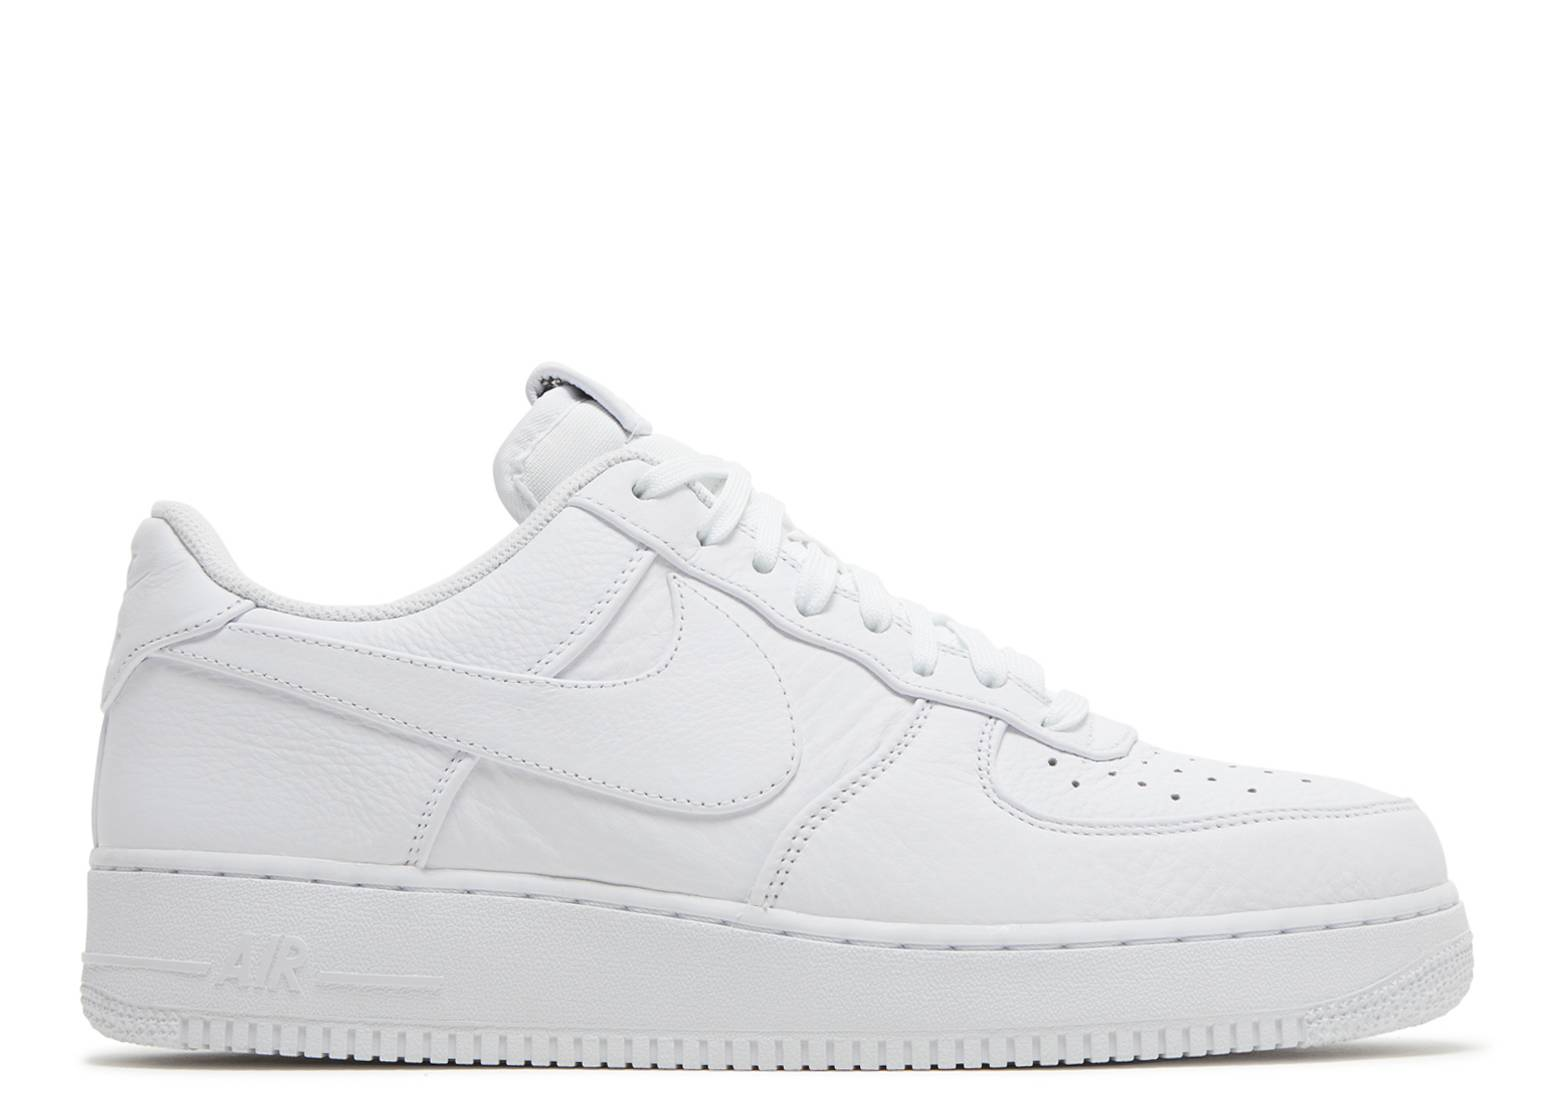 new style d0c55 cdaa9 Air Force 1 Low Premium